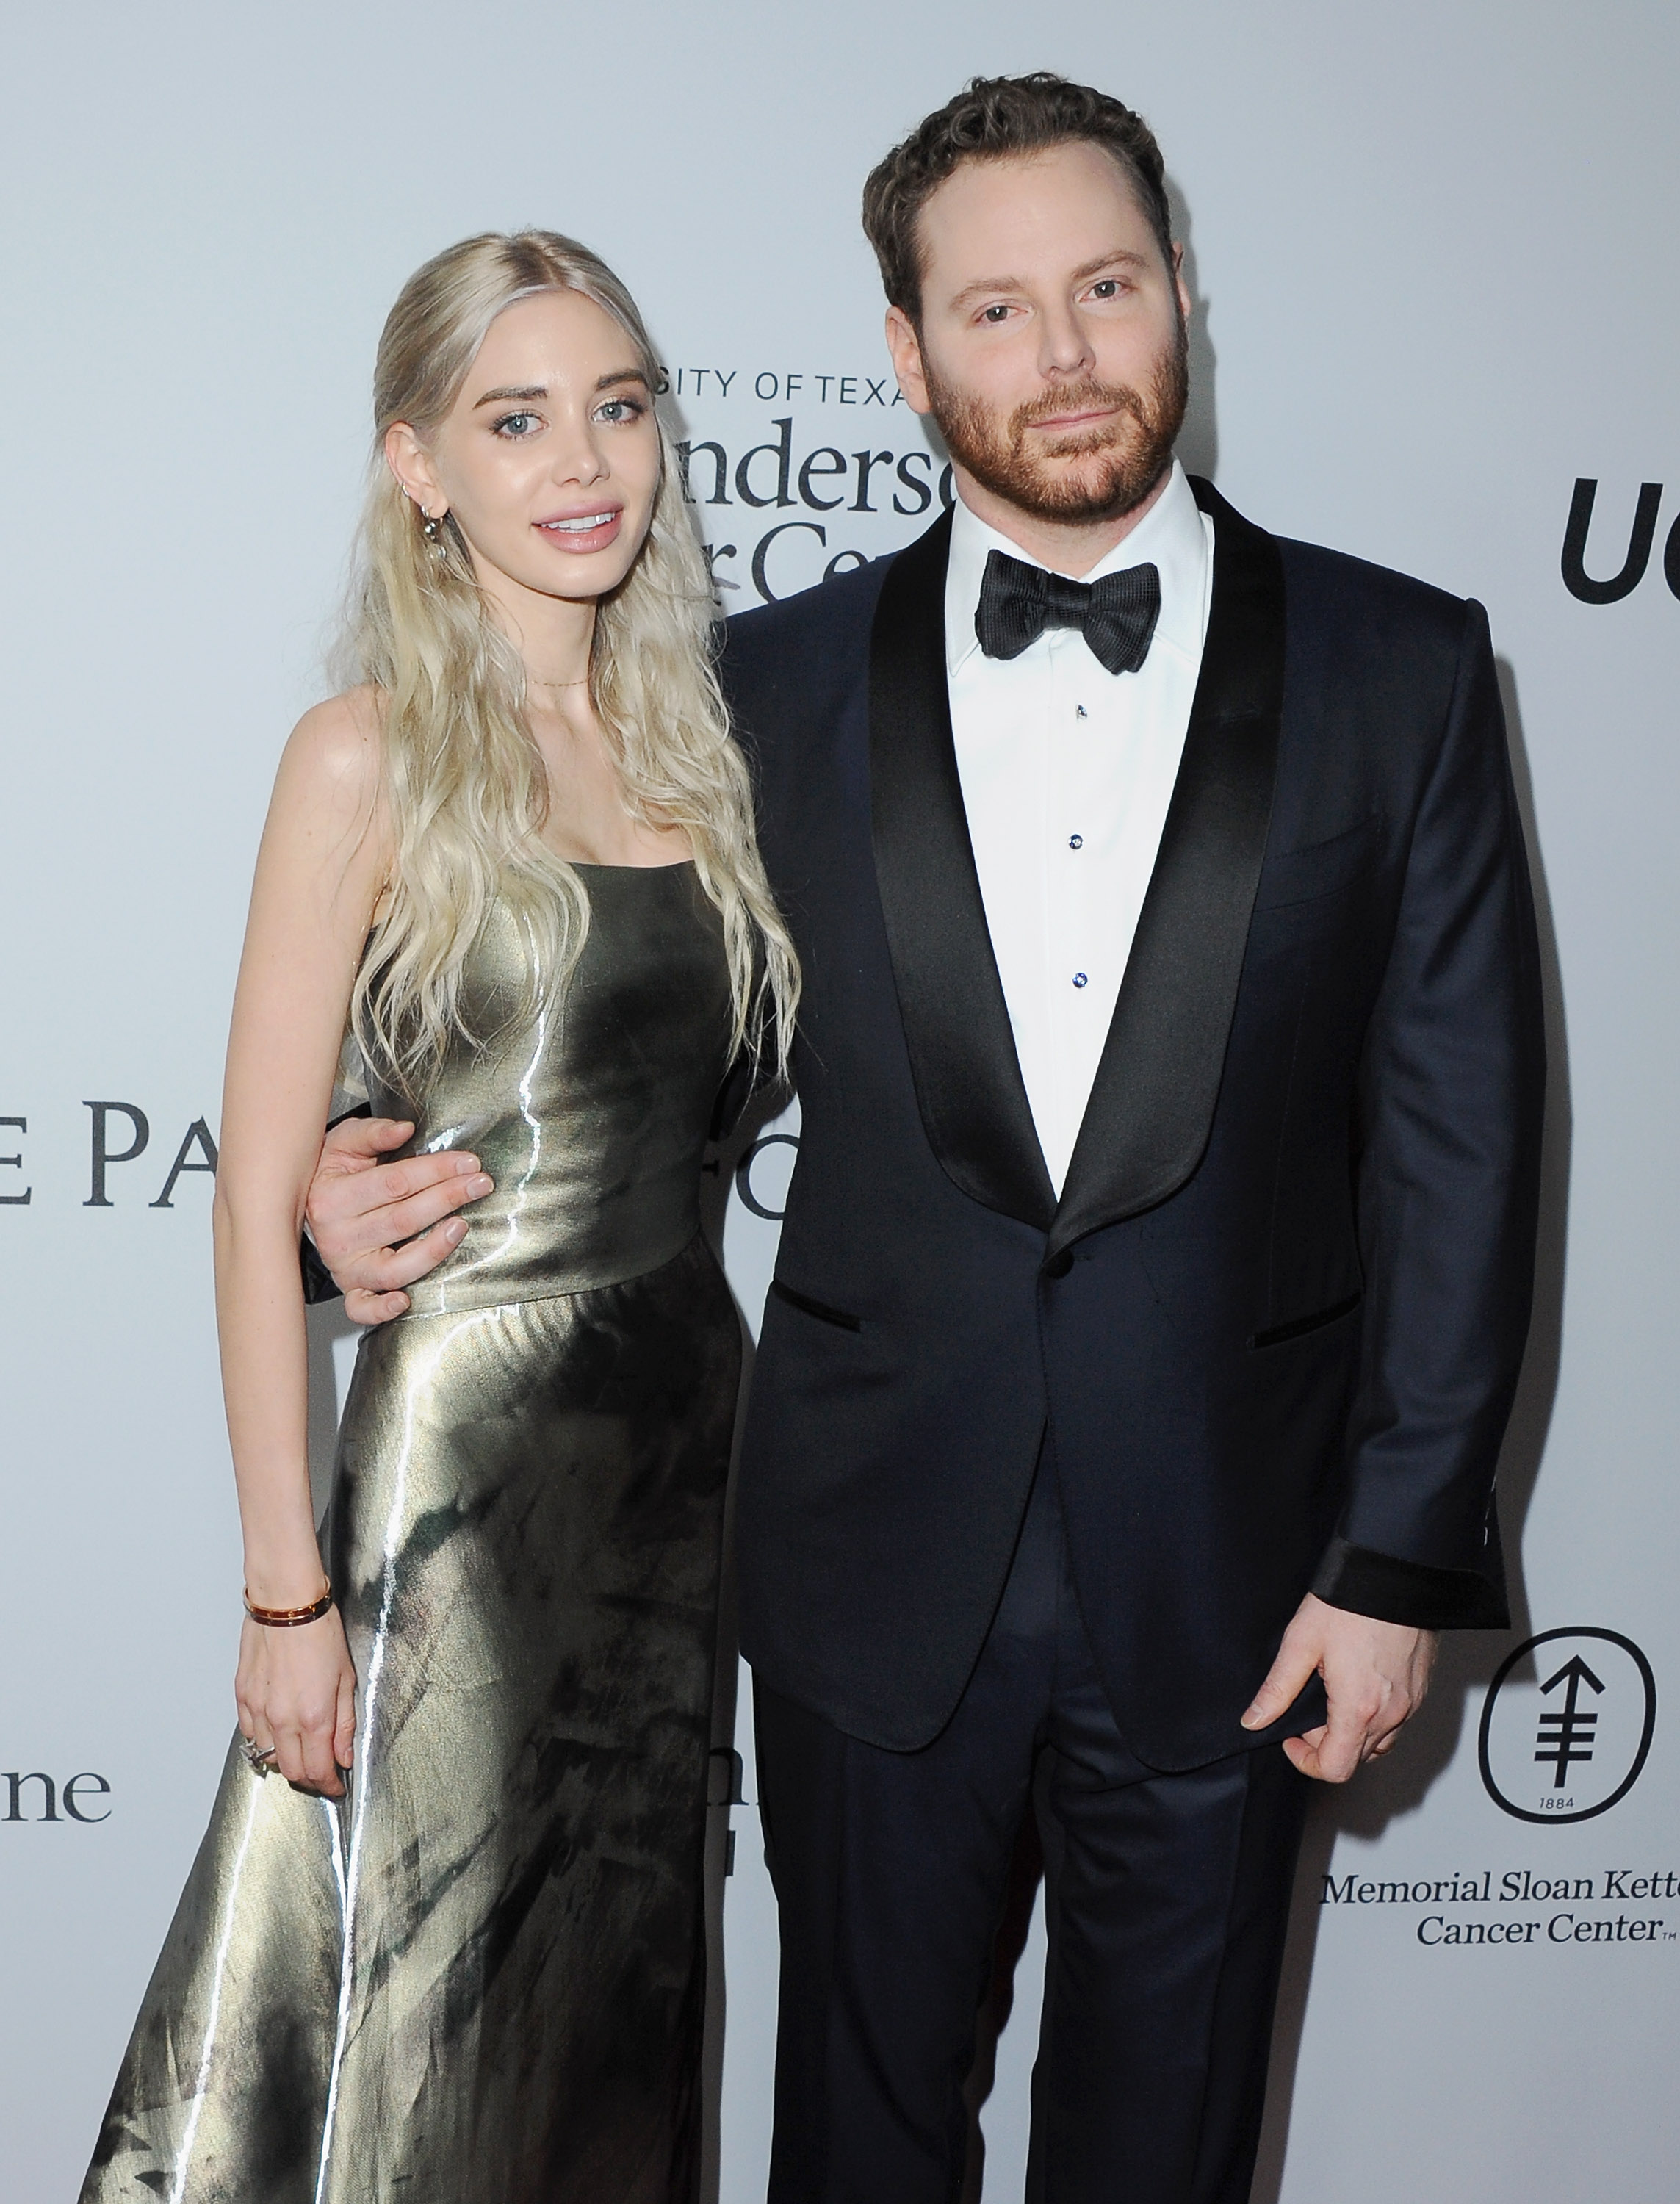 LOS ANGELES, CA - APRIL 13: Sean Parker and wife Alexandra Lenas arrive at Sean Parker And The Parker Foundation Launch The Parker Institute For Cancer Immunotherapy Gala on April 13, 2016 in Los Angeles, California. (Photo by Jon Kopaloff/FilmMagic)